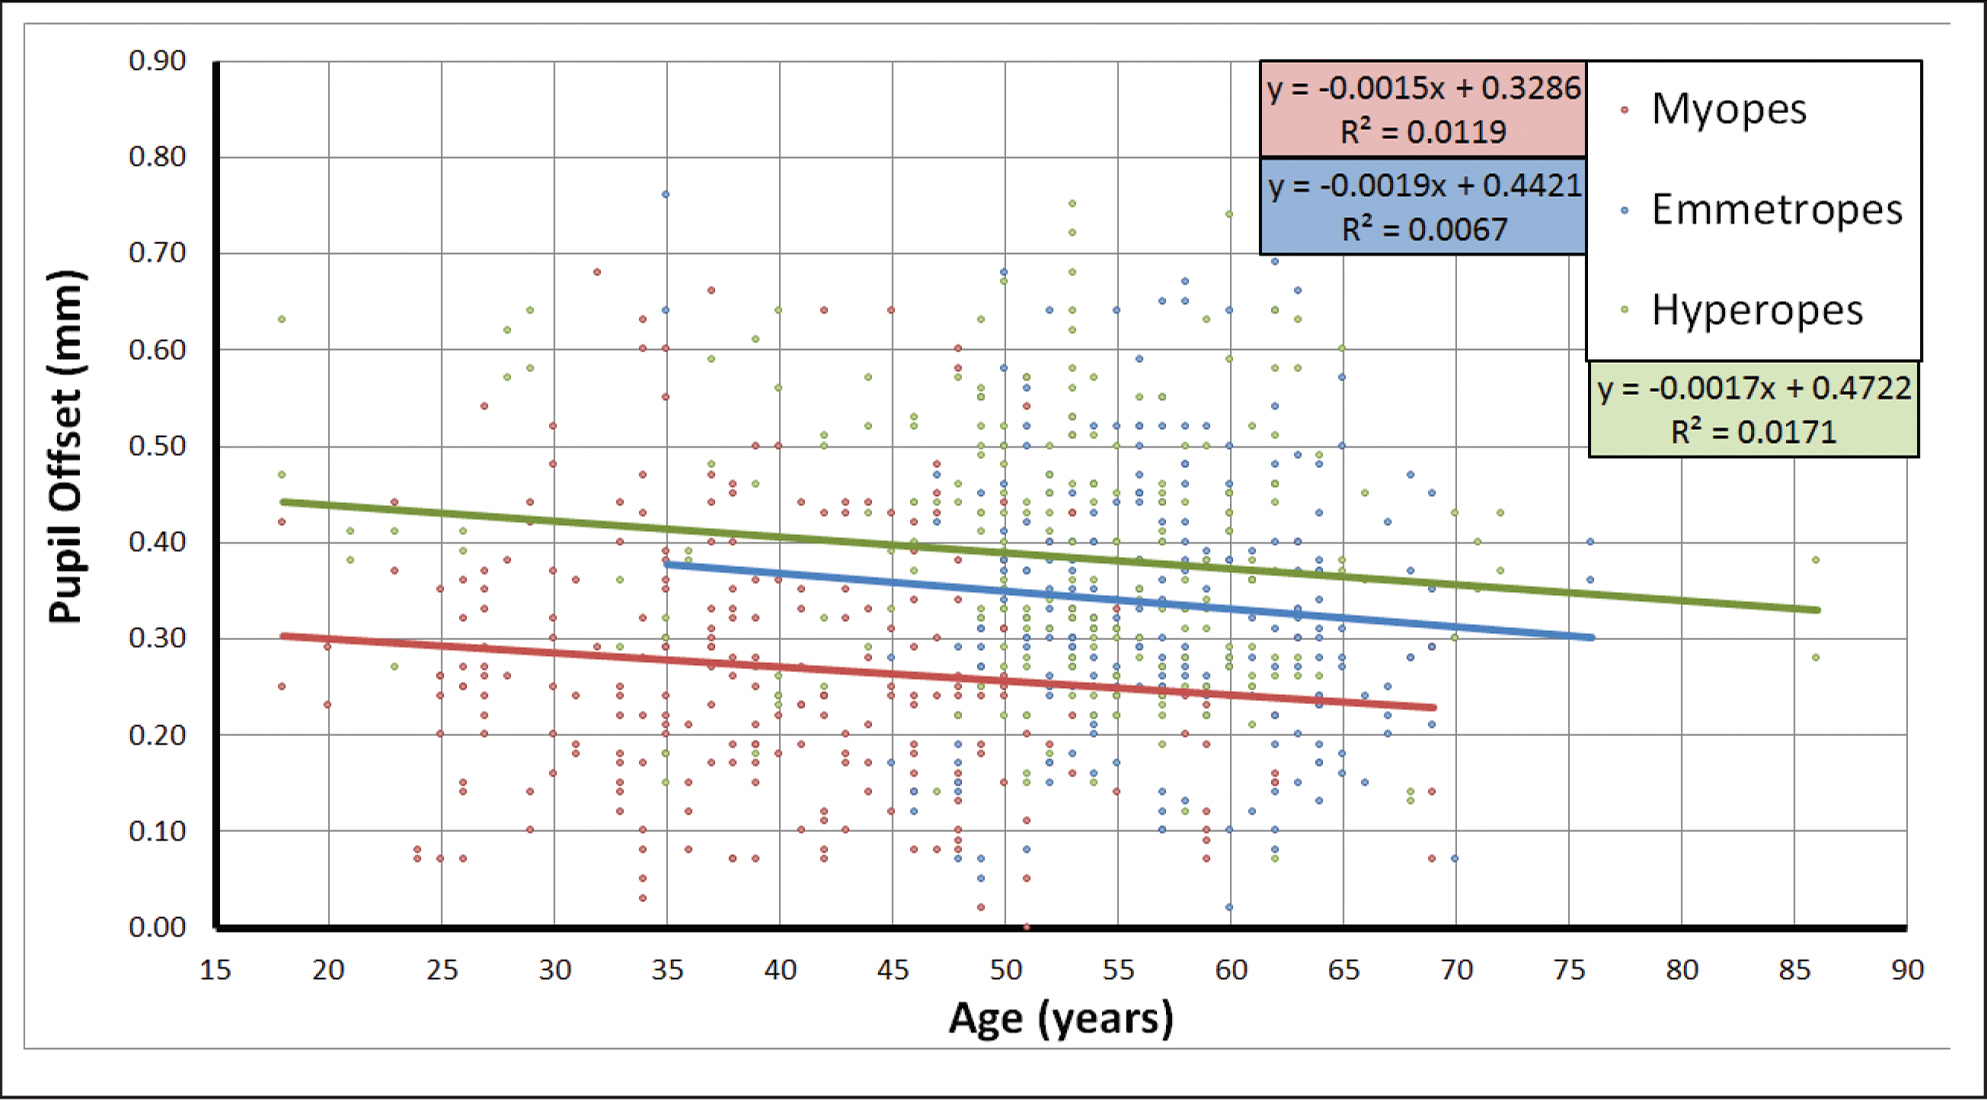 Scatter plot of the pupil offset magnitude against age for the myopic, emme-tropic, and hyperopic groups. A linear regression line shows a weak trend for decrease with age for all three groups. The correlation was statistically significant only for the hyperopic group (P = .086 for the myopic group, P = .198 for the emmetropic group, and P = .045 for the hyperopic group).